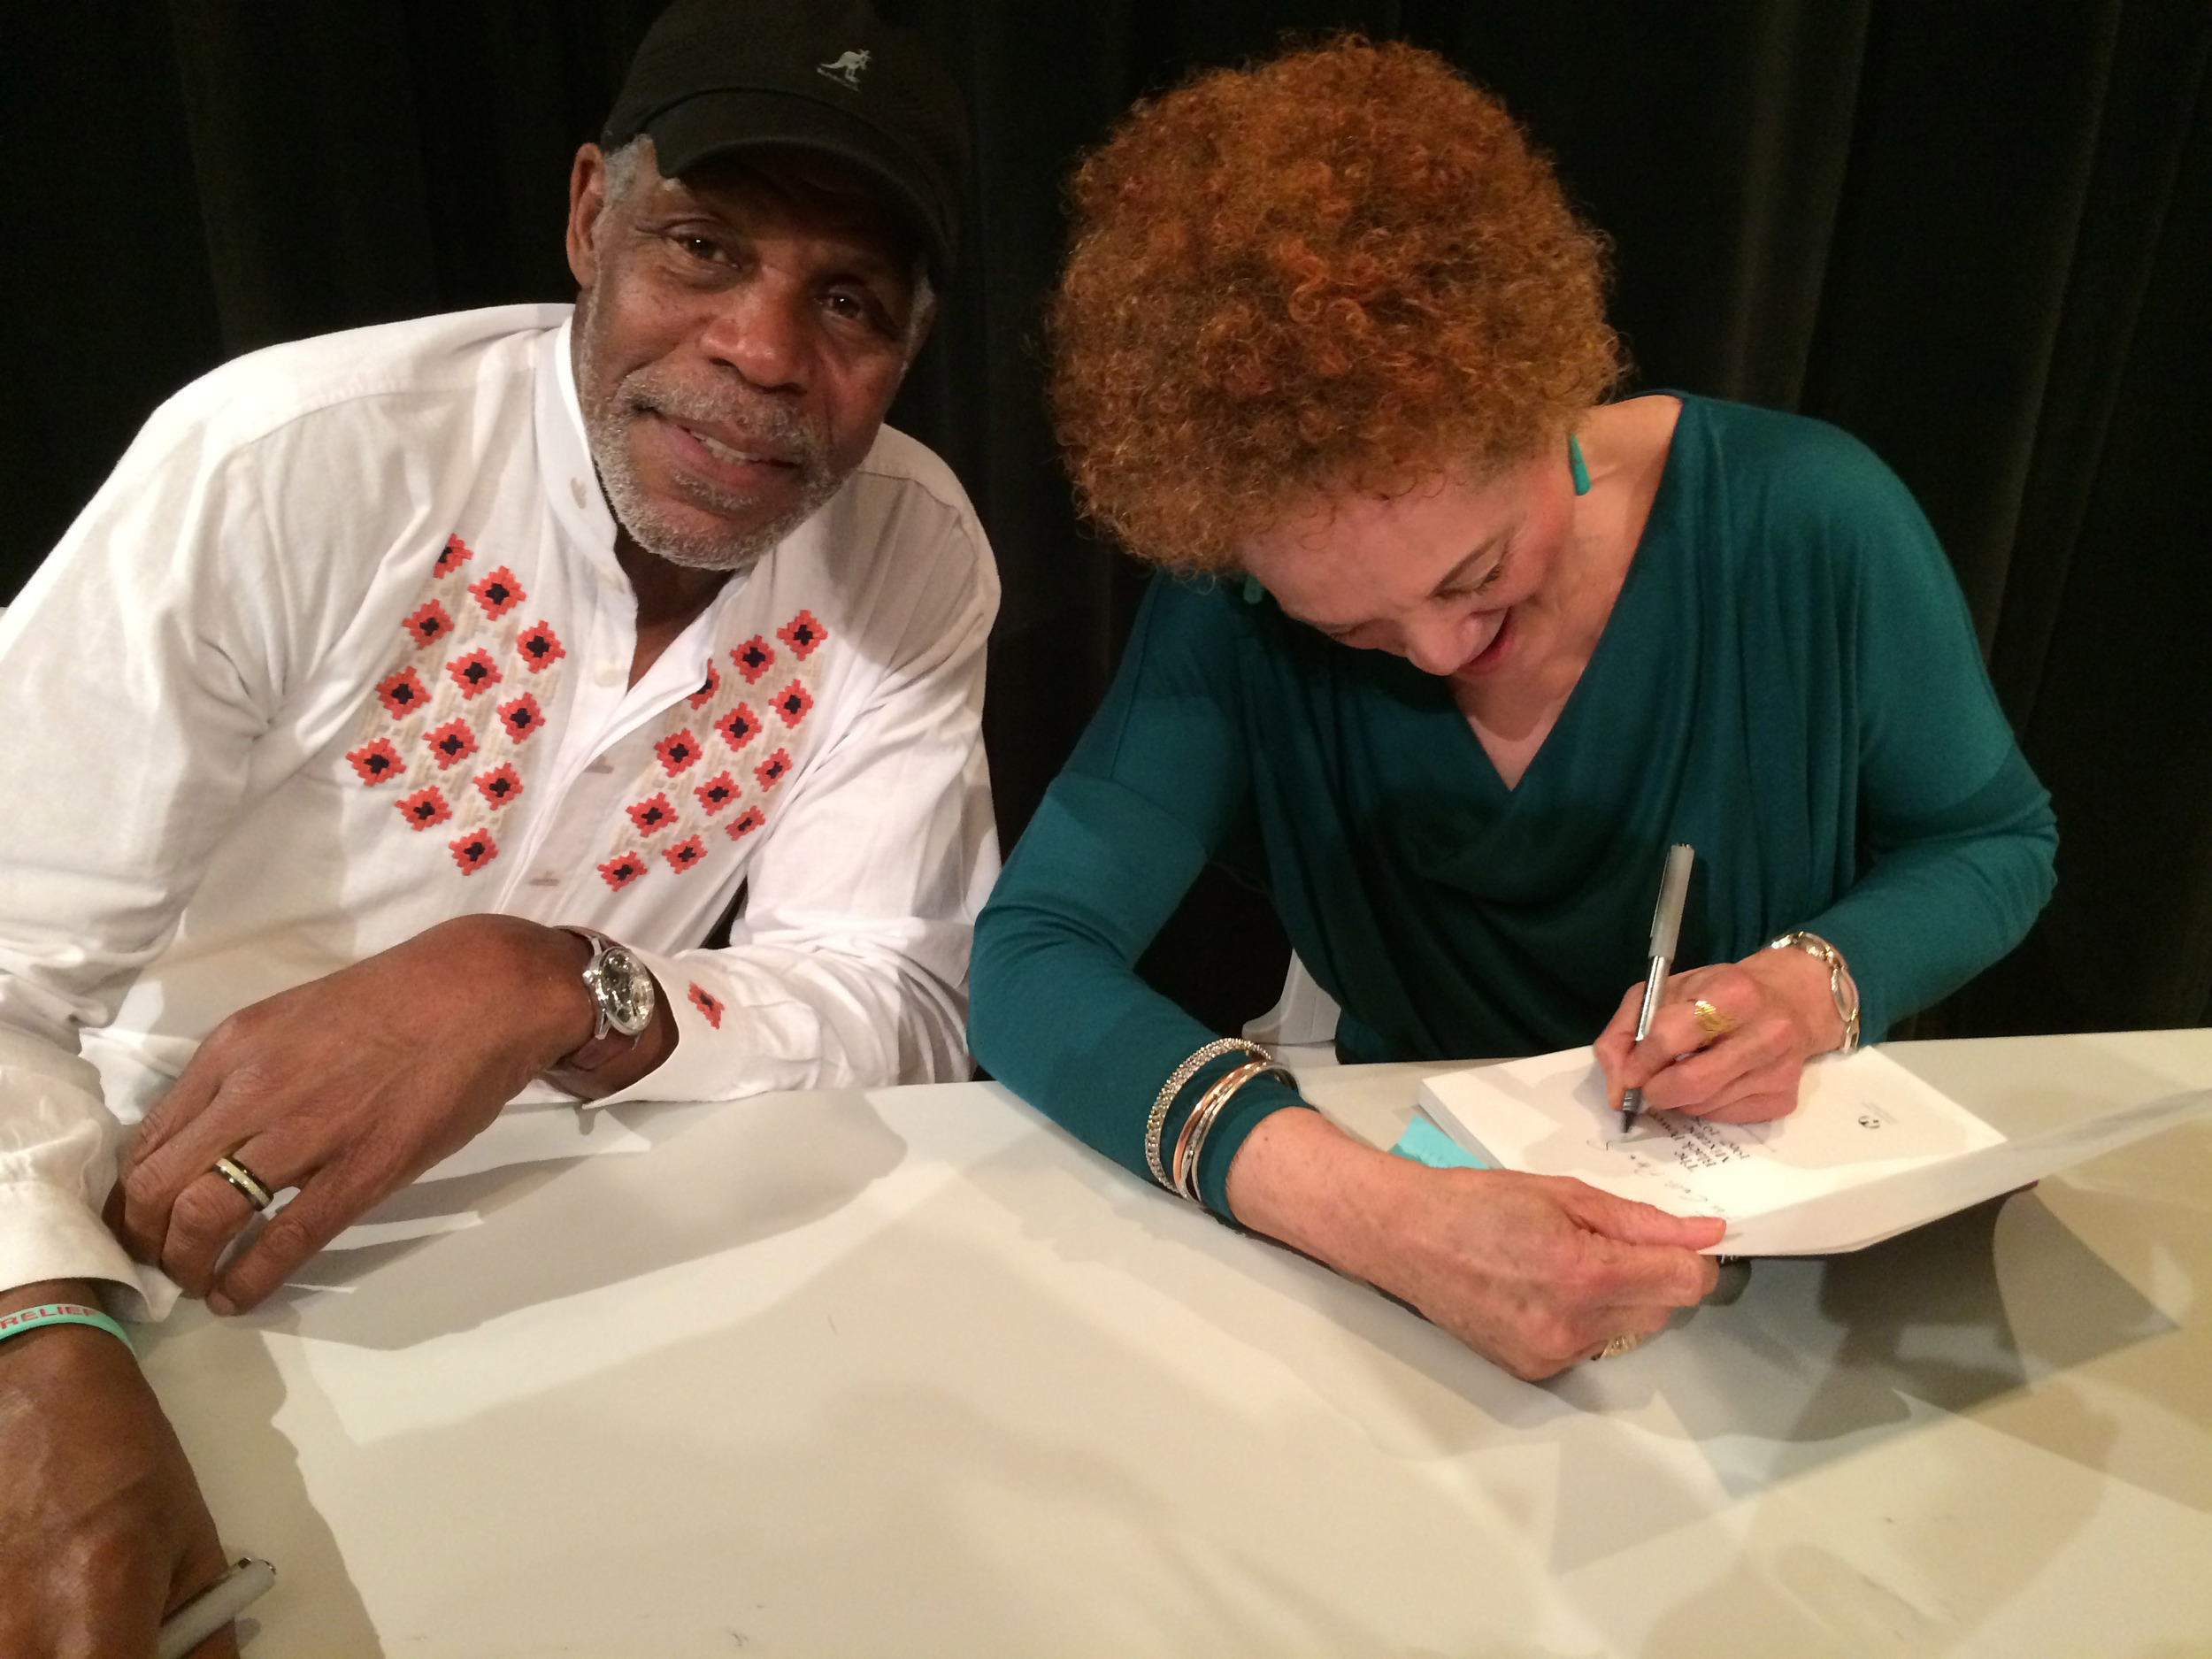 Kathleen Cleaver and Danny Glover